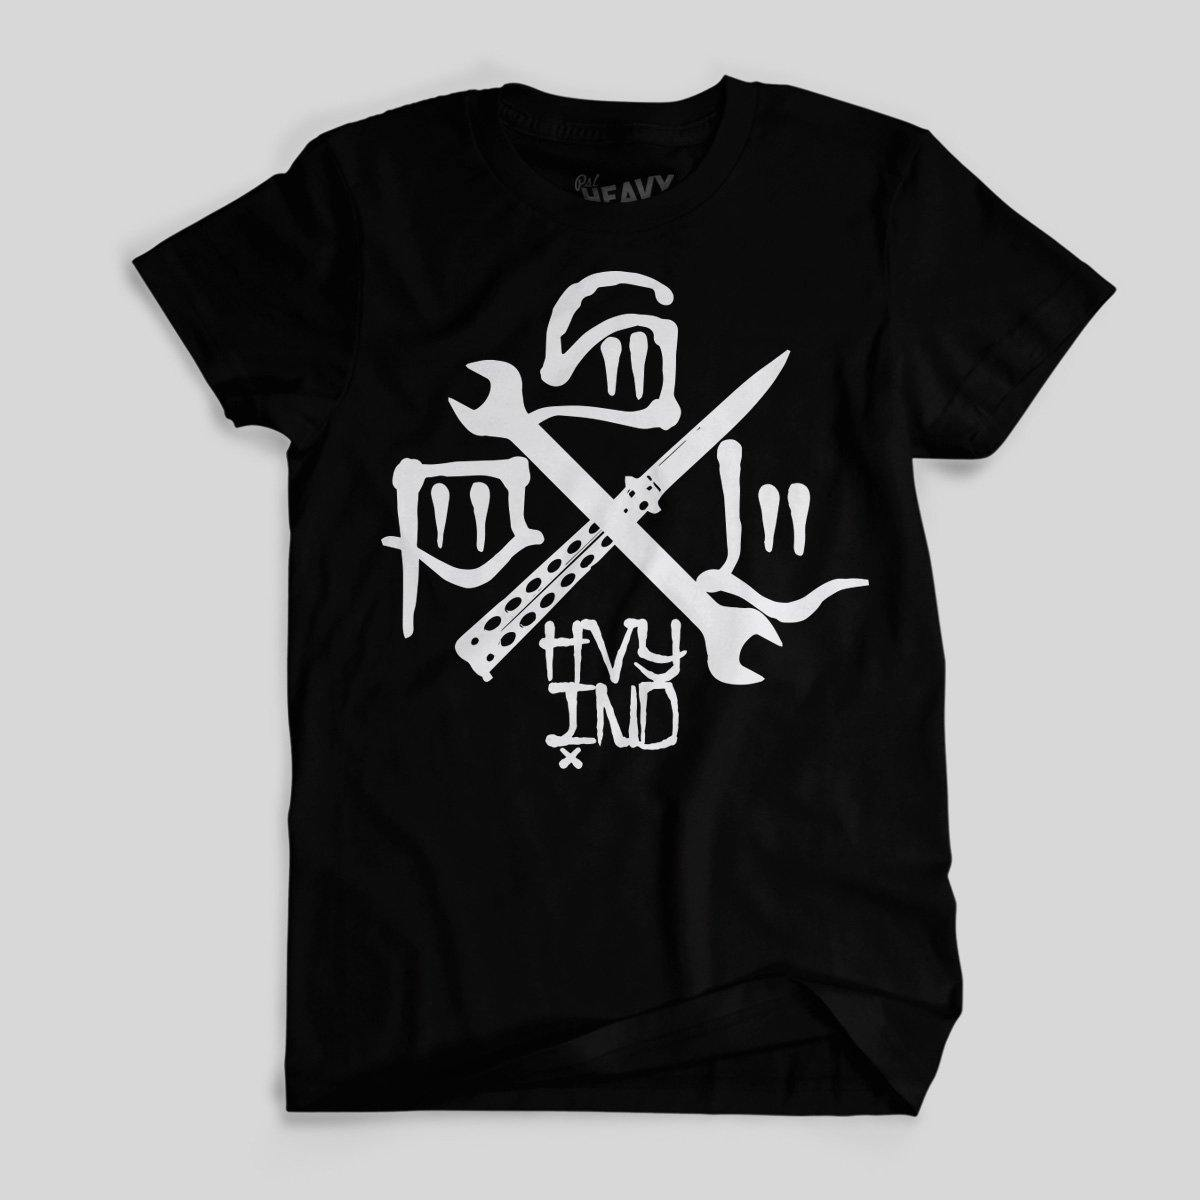 Tools Of the Trade, T-shirt, Black | PSL Heavy Ind